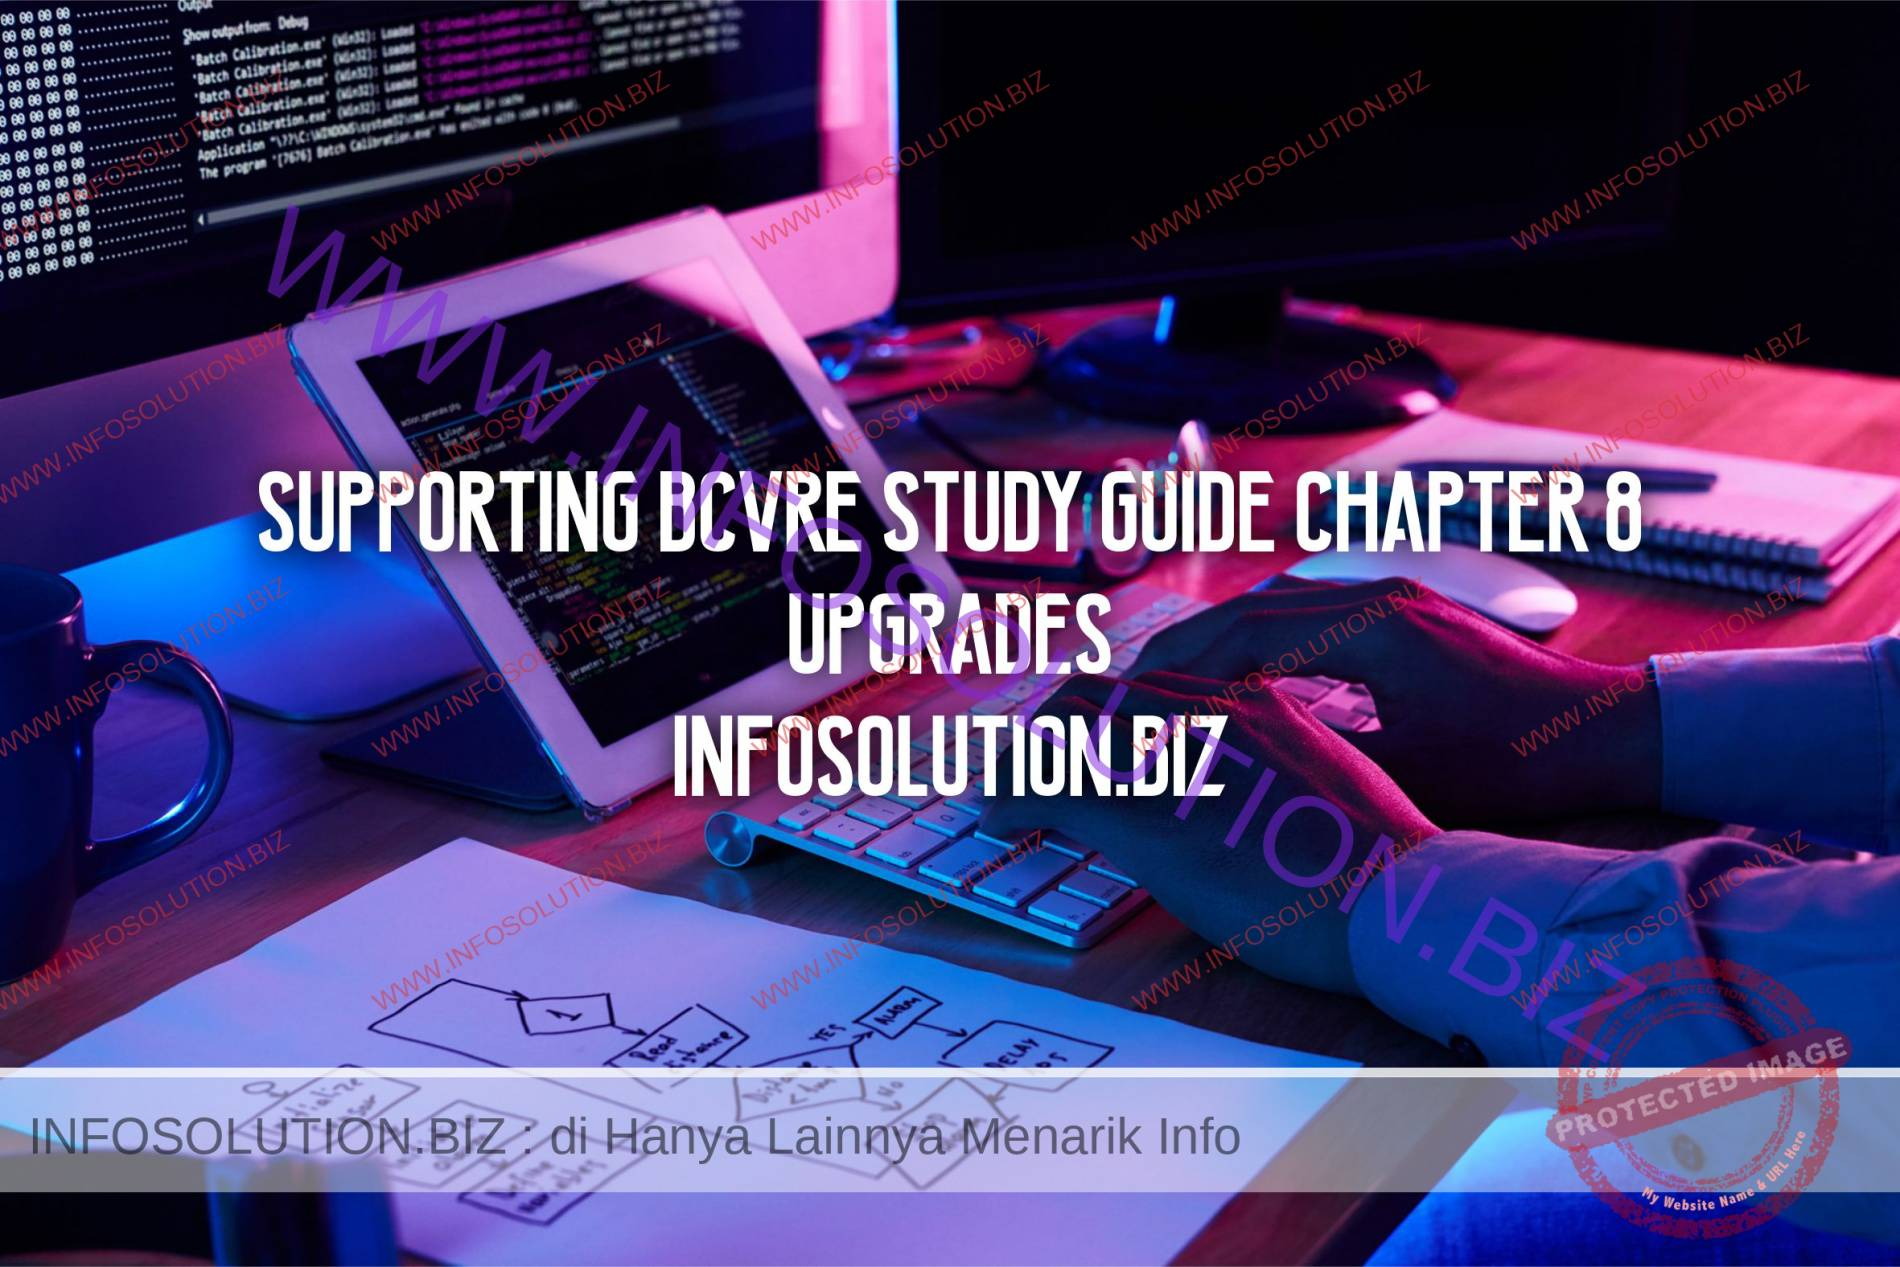 Supporting BCVRE Study Guide Chapter 8 Upgrades